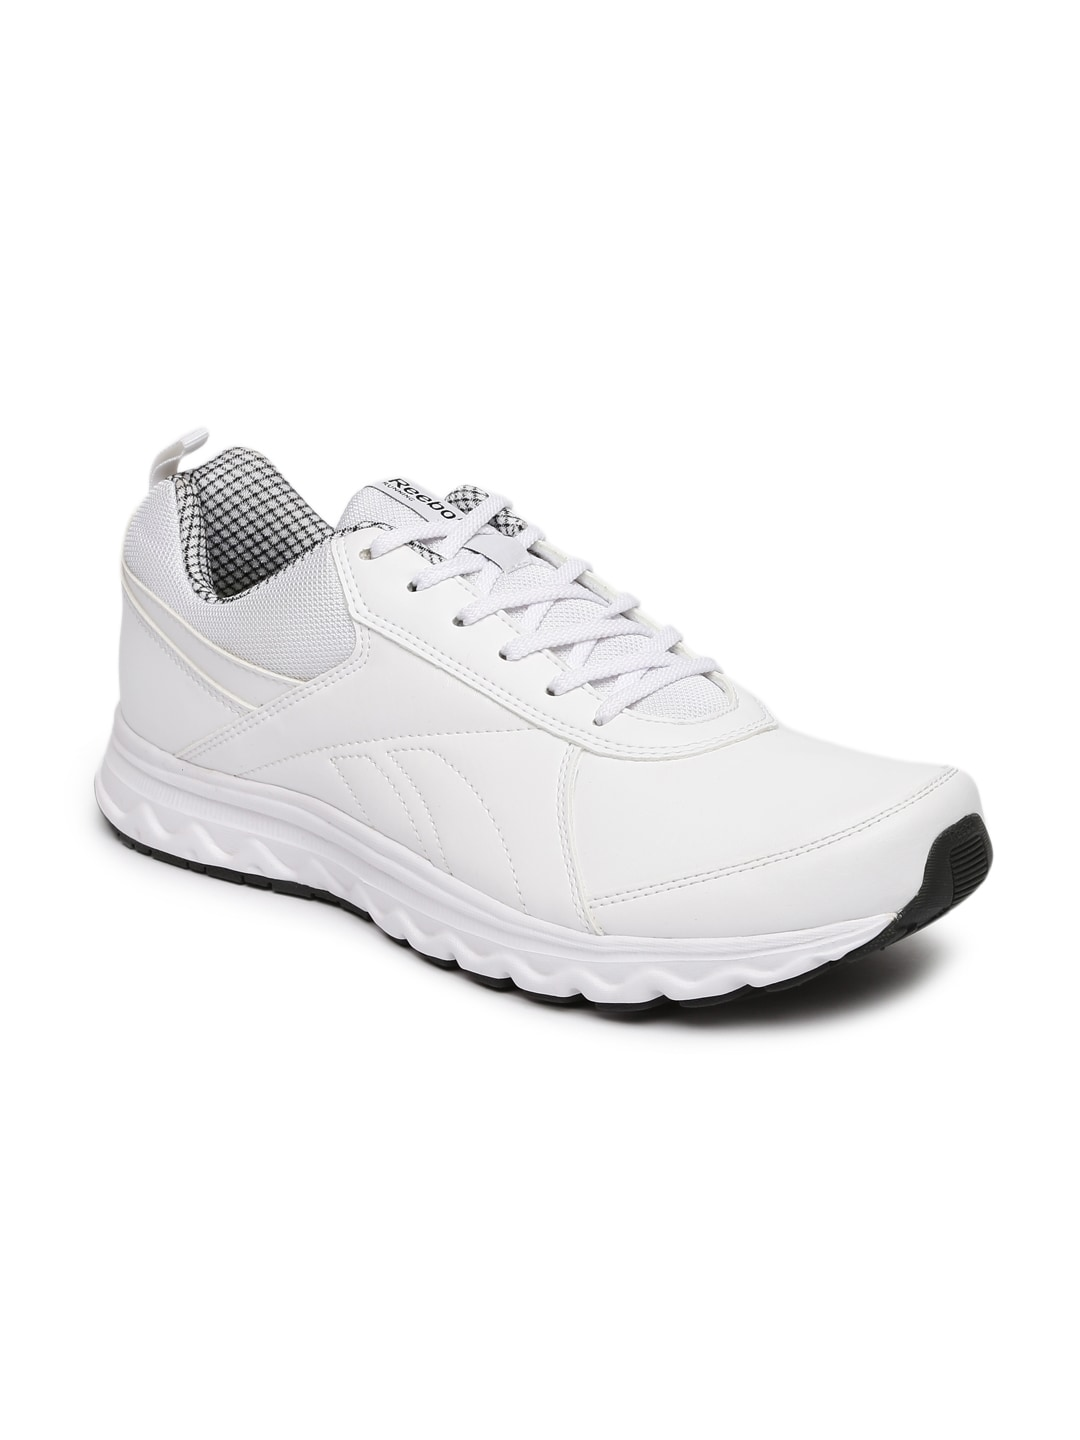 bf9b6c48bd48 Men Footwear - Buy Mens Footwear   Shoes Online in India - Myntra